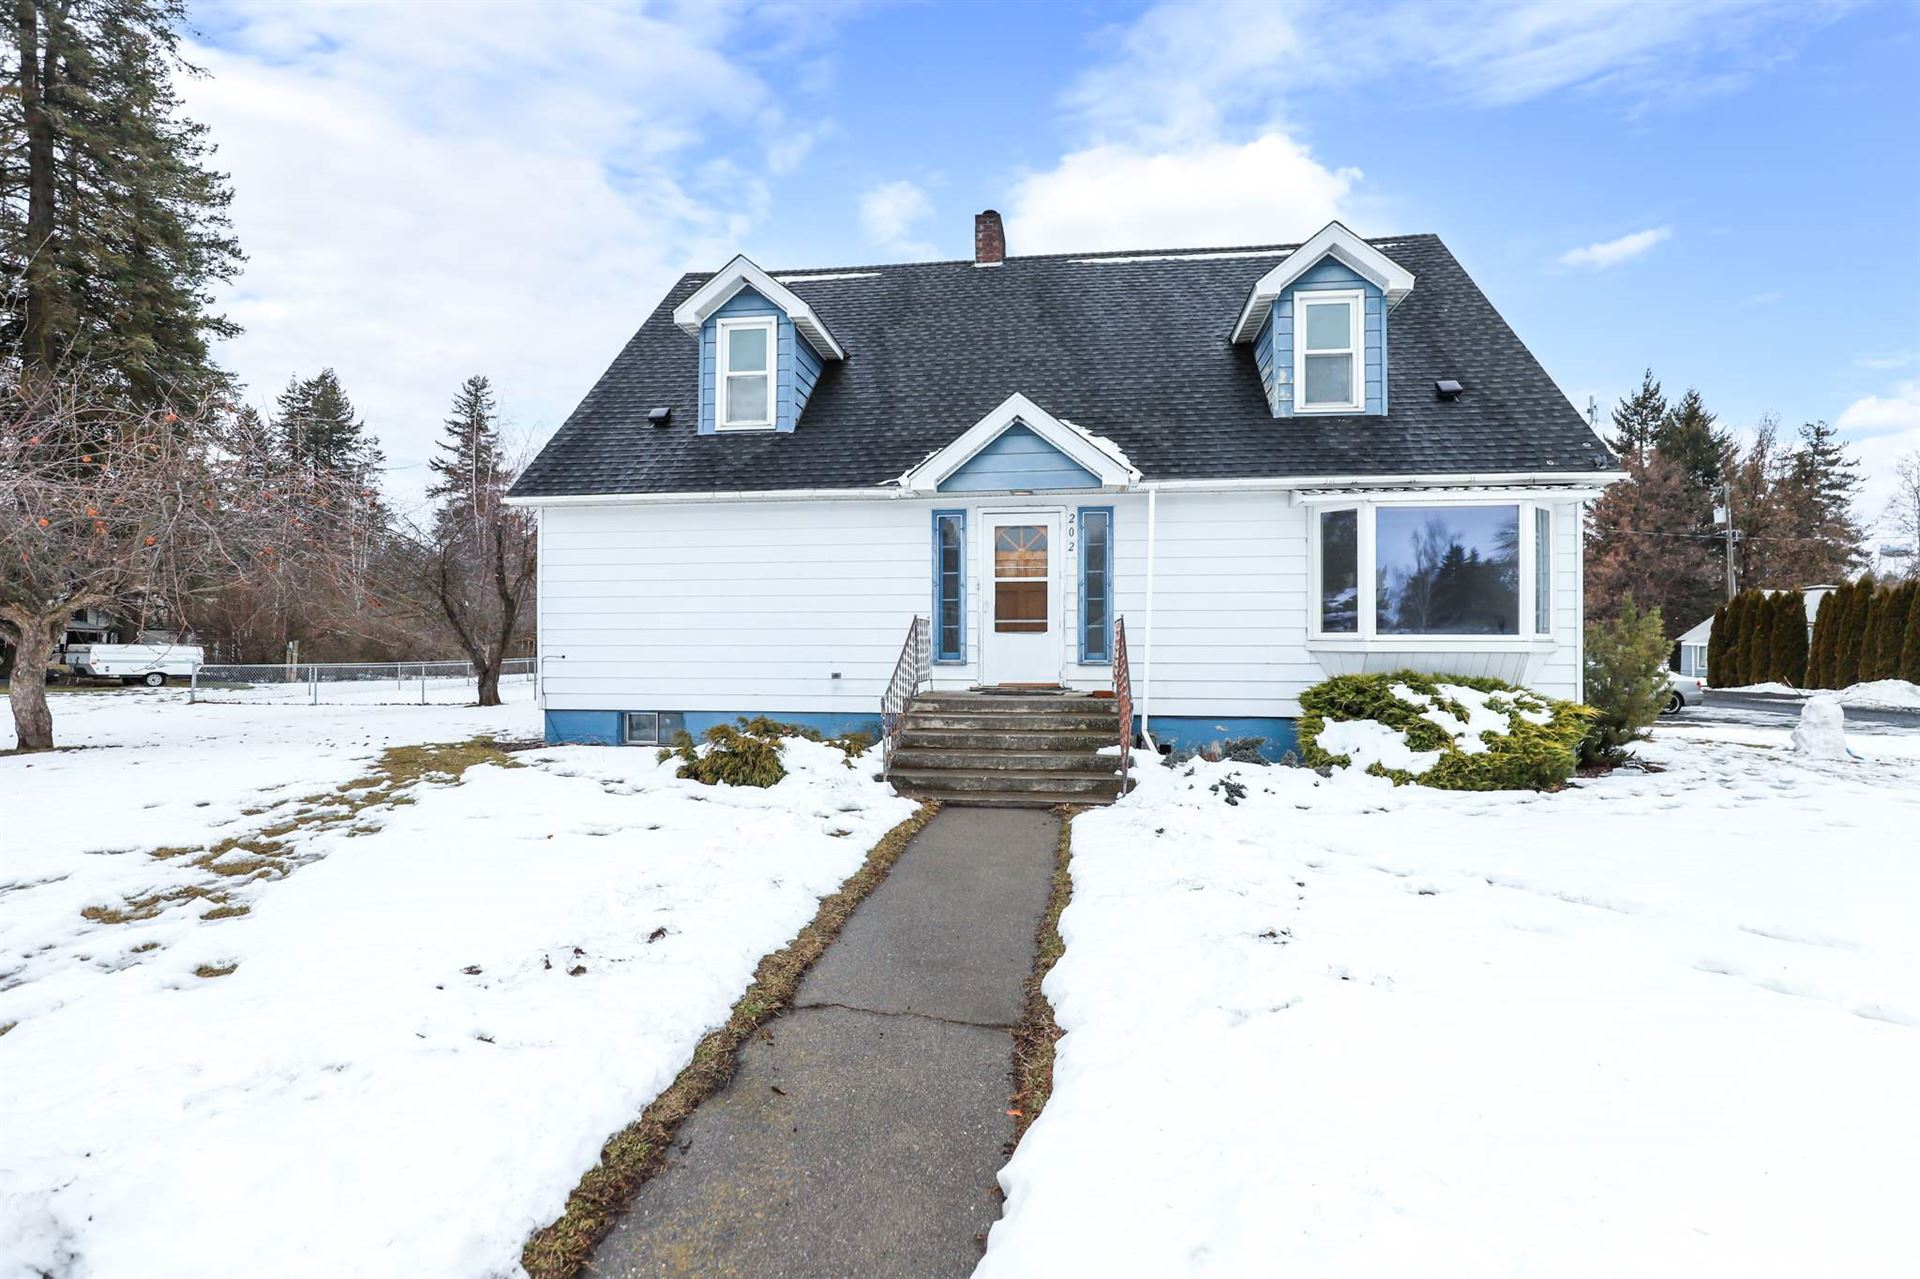 202 S 4th St, Oakesdale, WA 99158 - #: 202111873